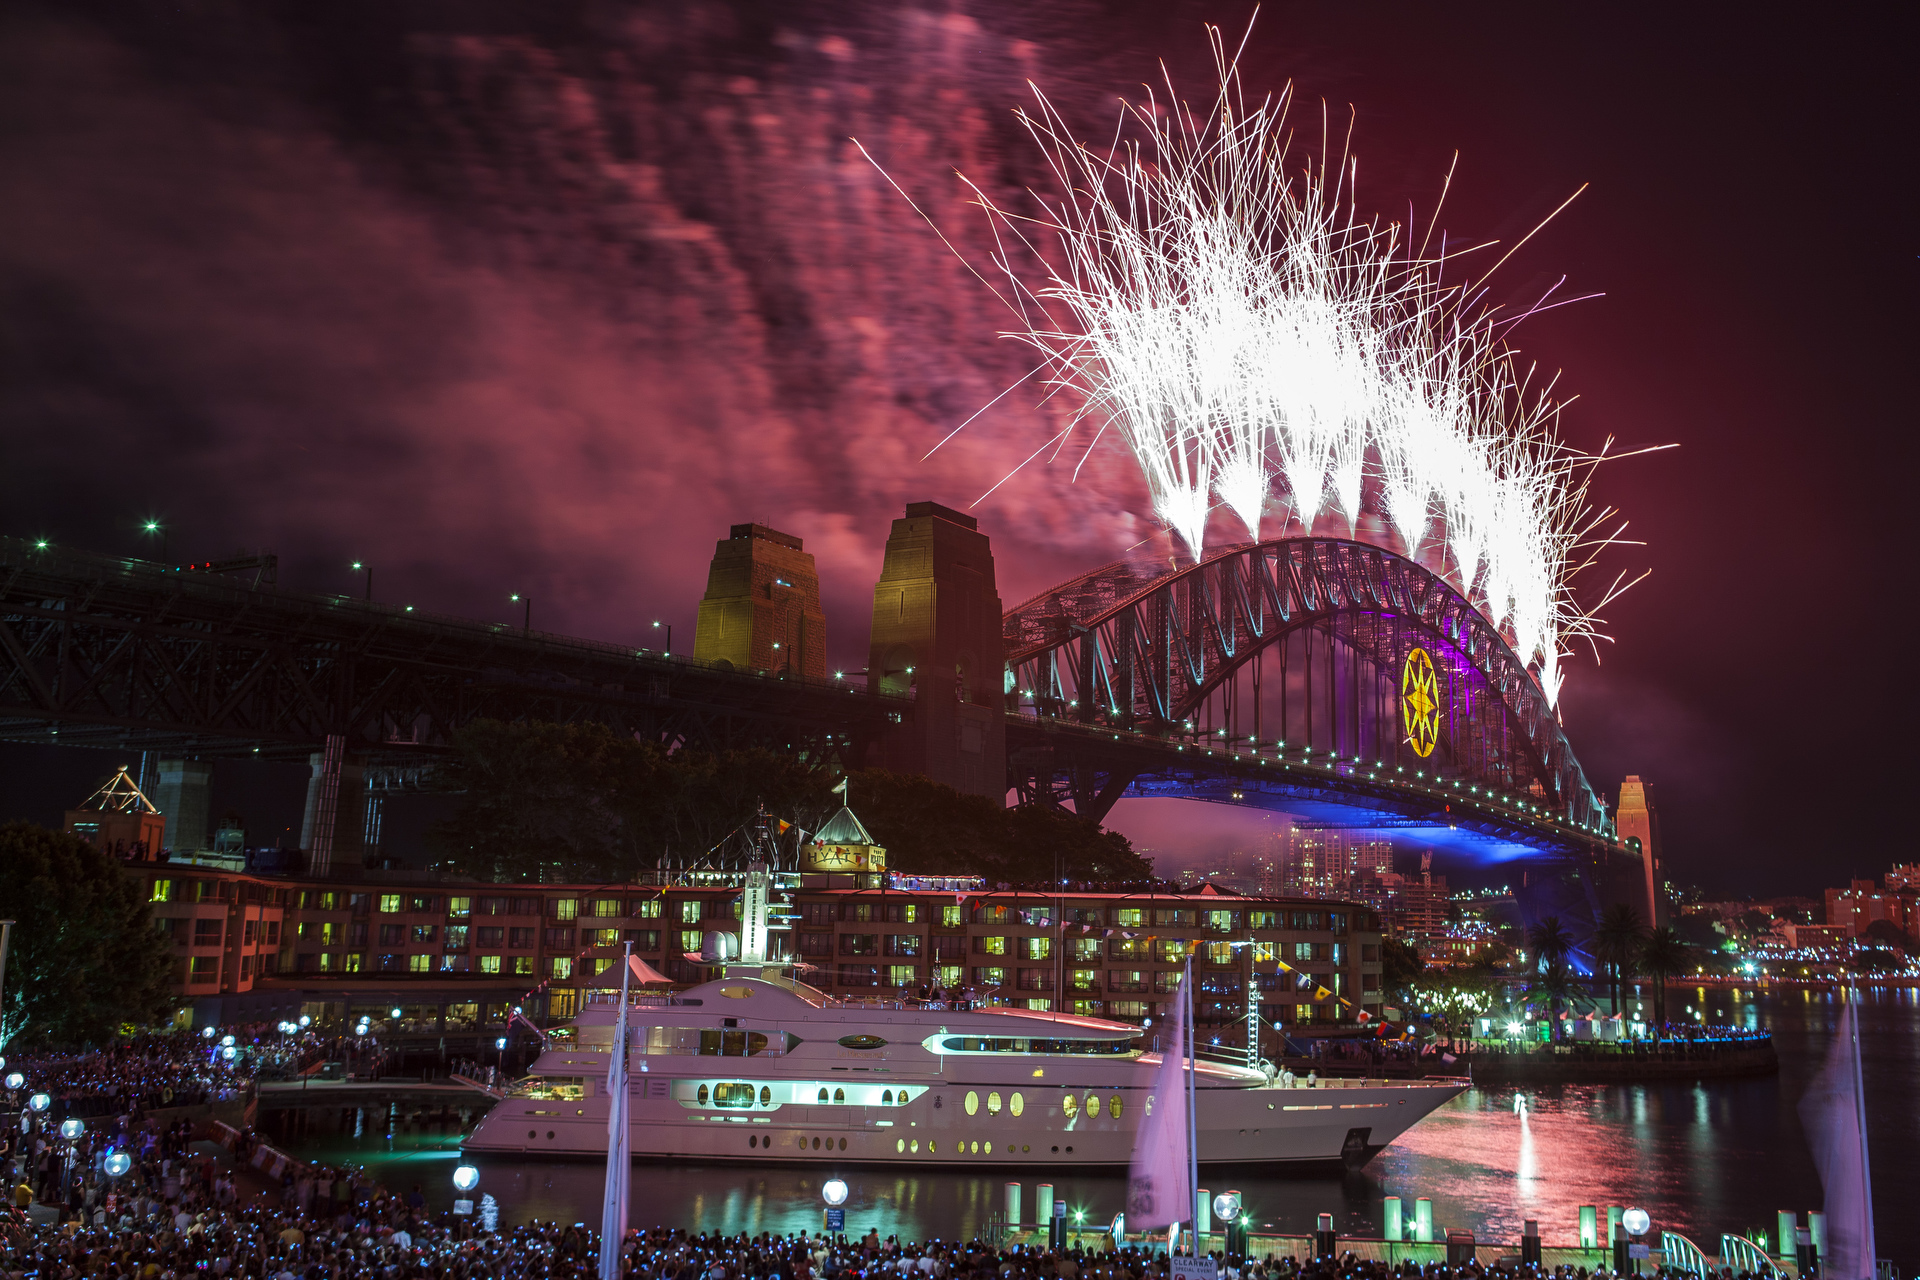 Sydney Superyacht & Boat Photographer, Super yacht, boats, luxury, rich, famous, dream, design, travel, ocean, yachts, super maxi, lifestyle, New Year's Eve, Fireworks